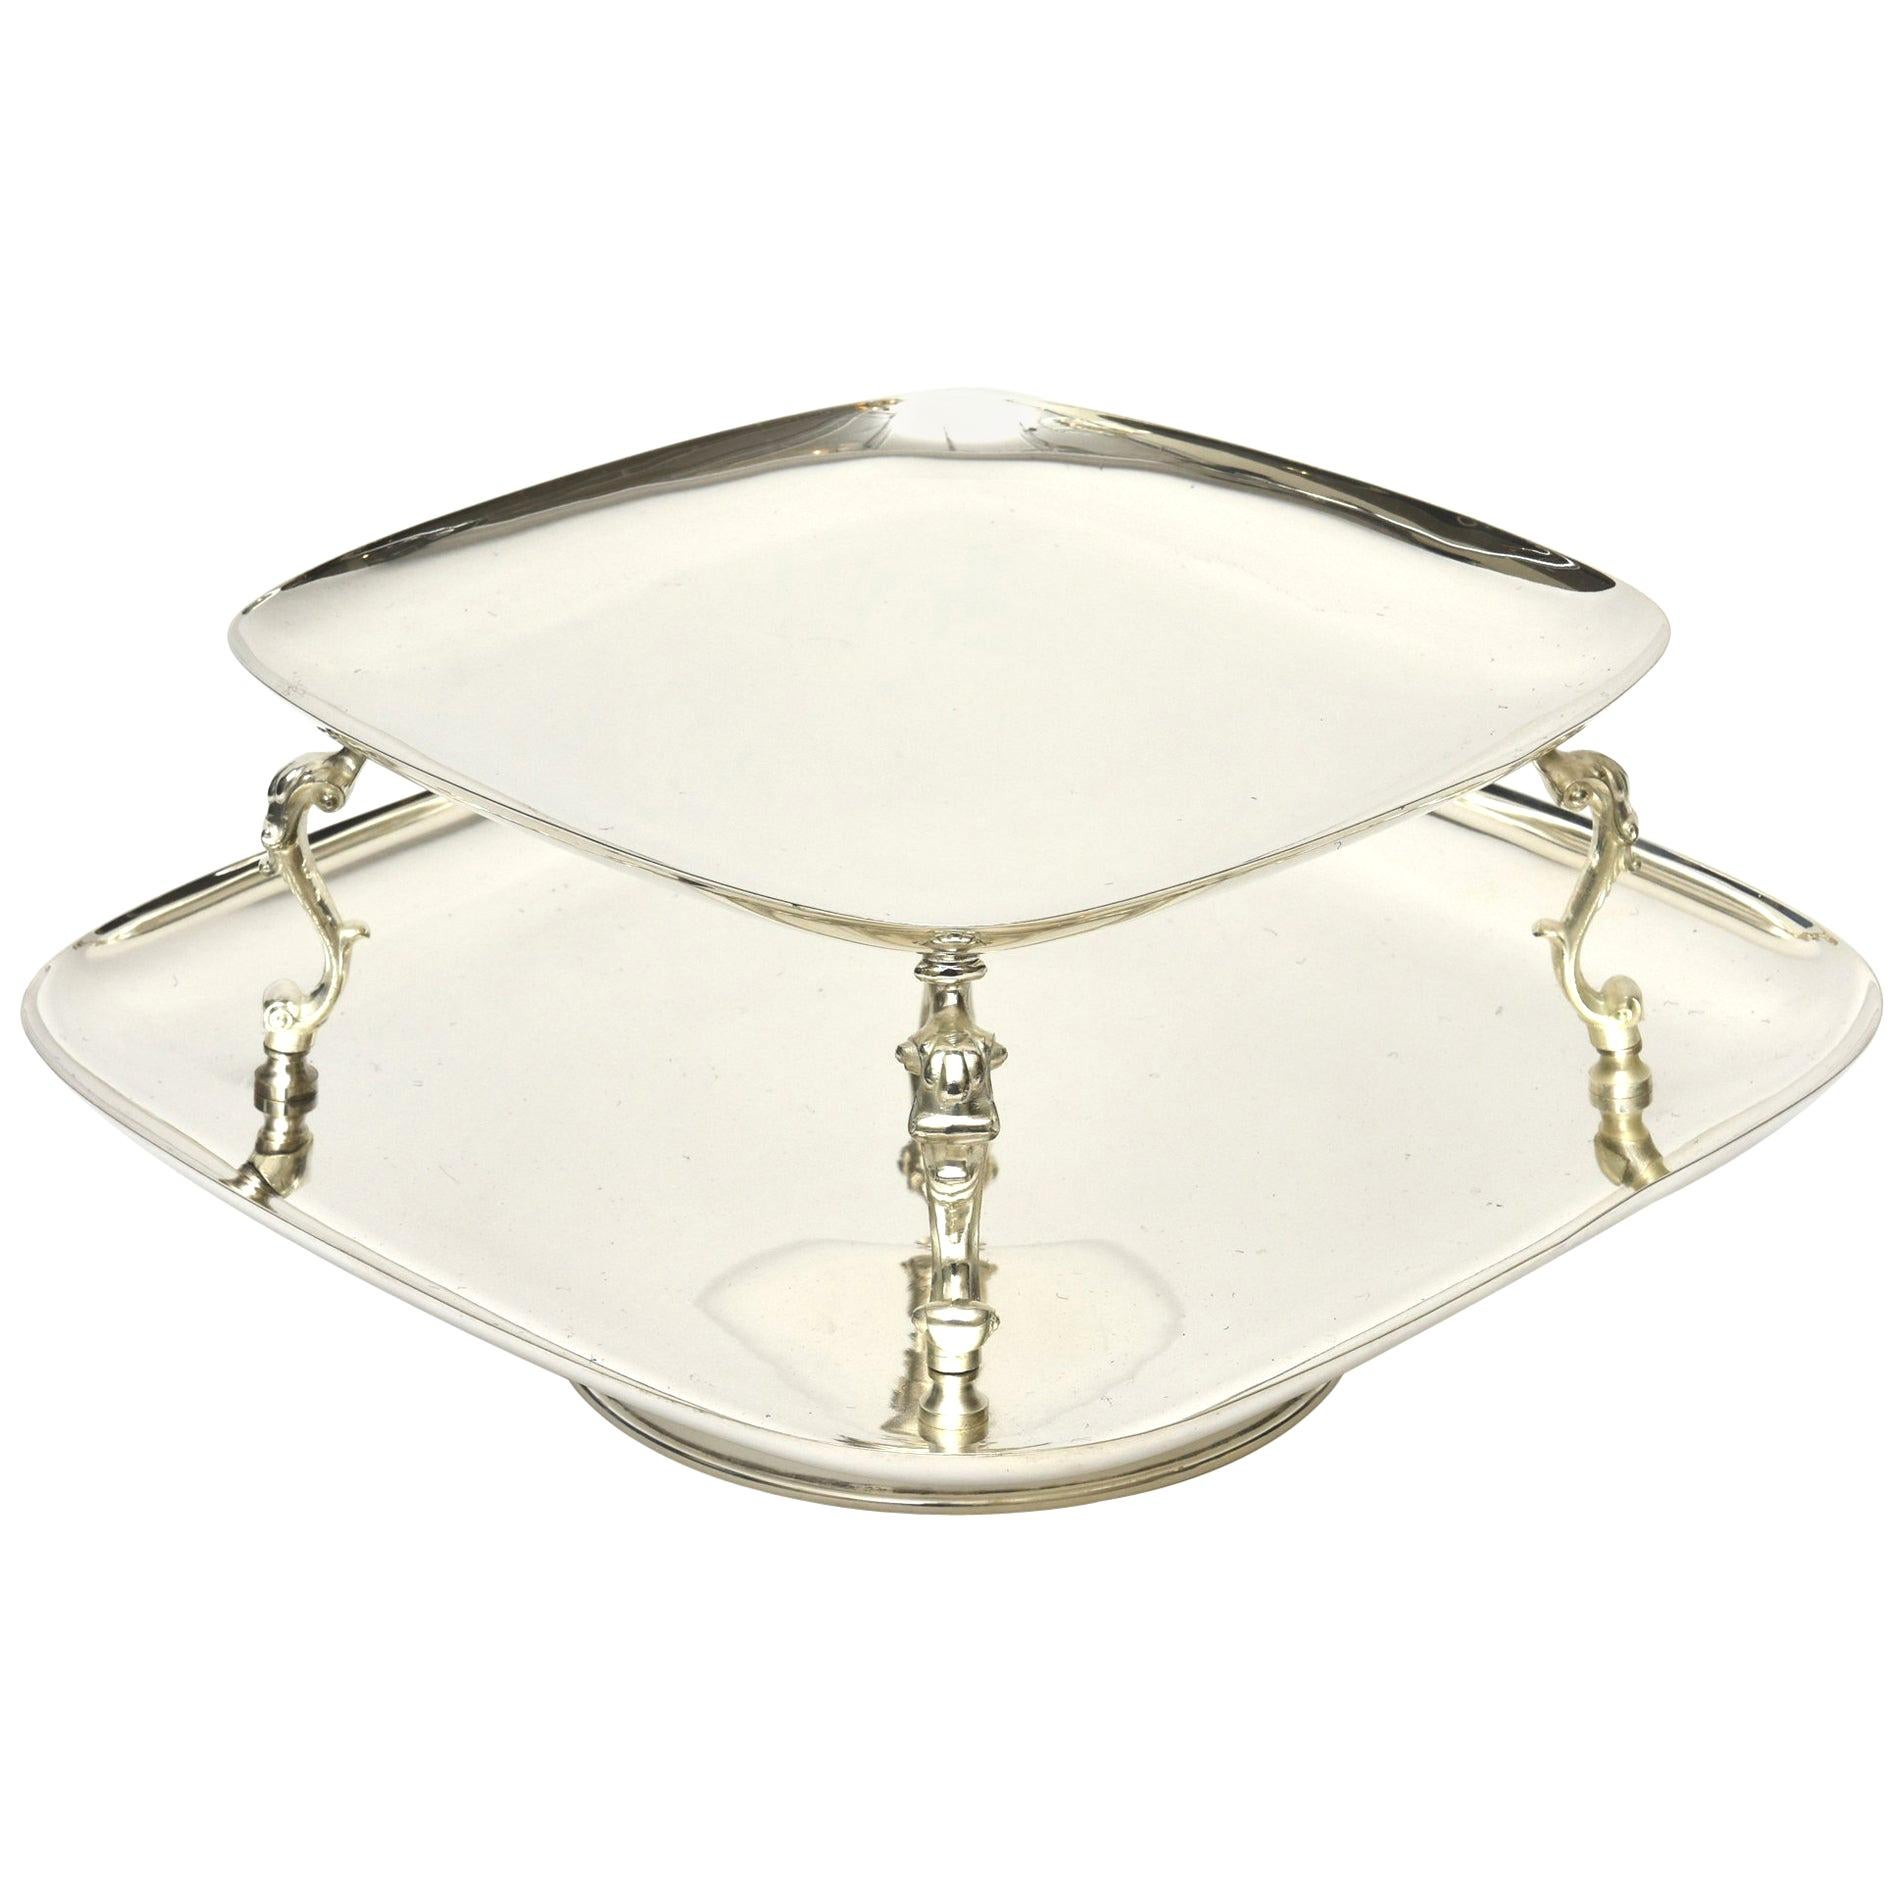 Silver Plate Swivel Serving Caddy or Serving Piece